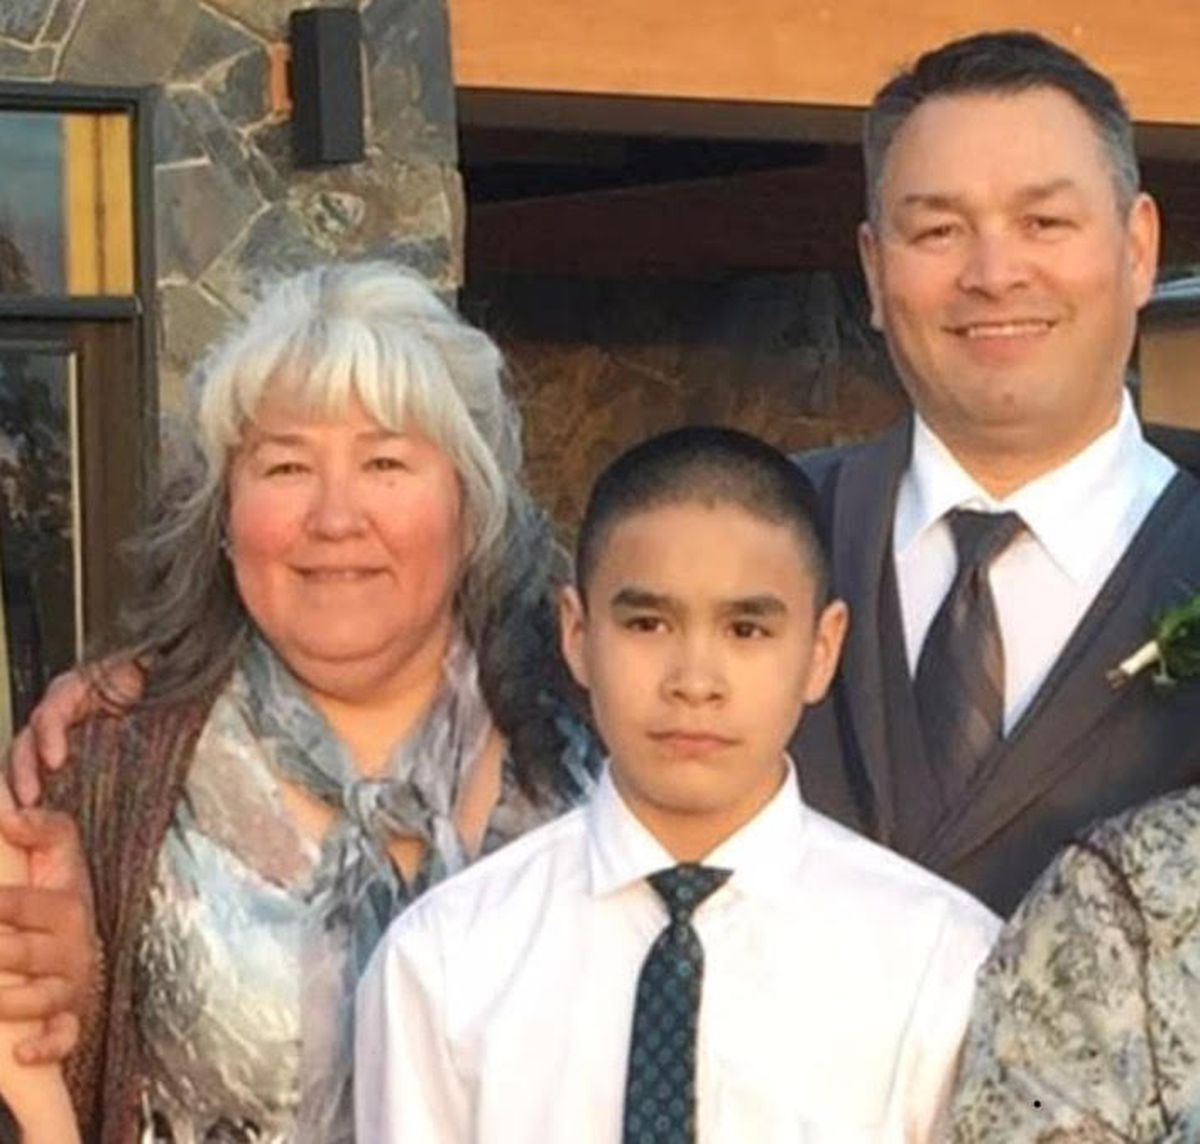 Crawford Sue Patkotak with his parents, Crawford and Laura Patkotak, in an undated photo. Crawford Sue Patkotak was stabbed and killed by another family member Wednesday, Oct. 18, 2017, in the North Slope hub city of Utqiaġvik, his father said. (Courtesy of Patkotak family)